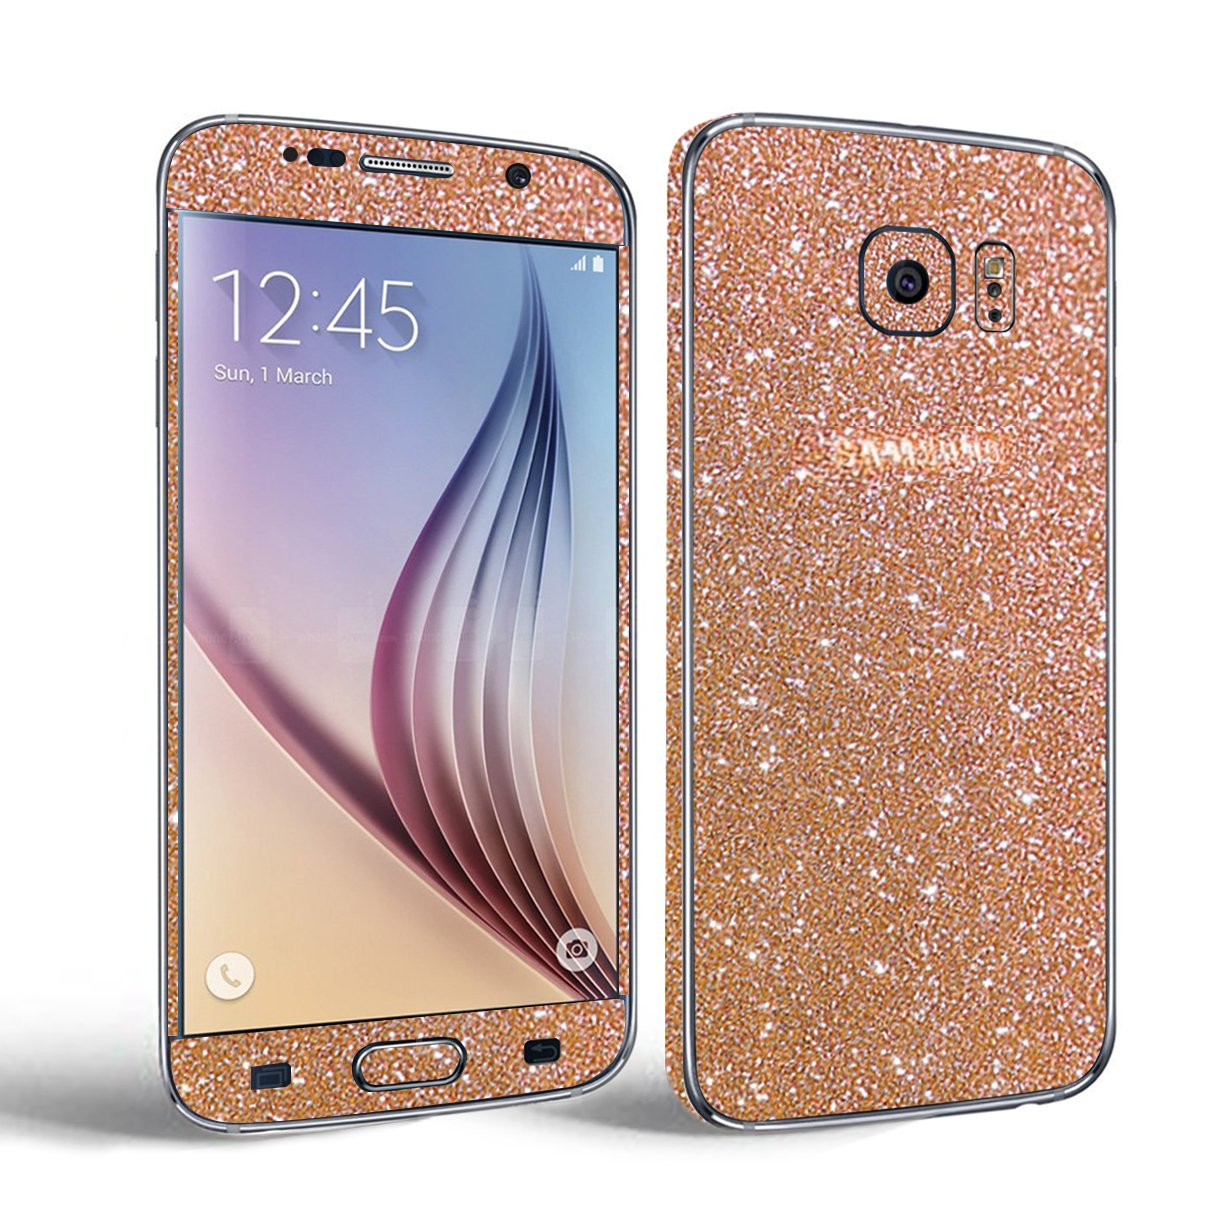 Samsung Galaxy S7 Edge Glitter Skin Sticker Toeoe Full Asoftcase S8 Plus Body Protector Film Decal With A Clear Case For Shock Absorbing